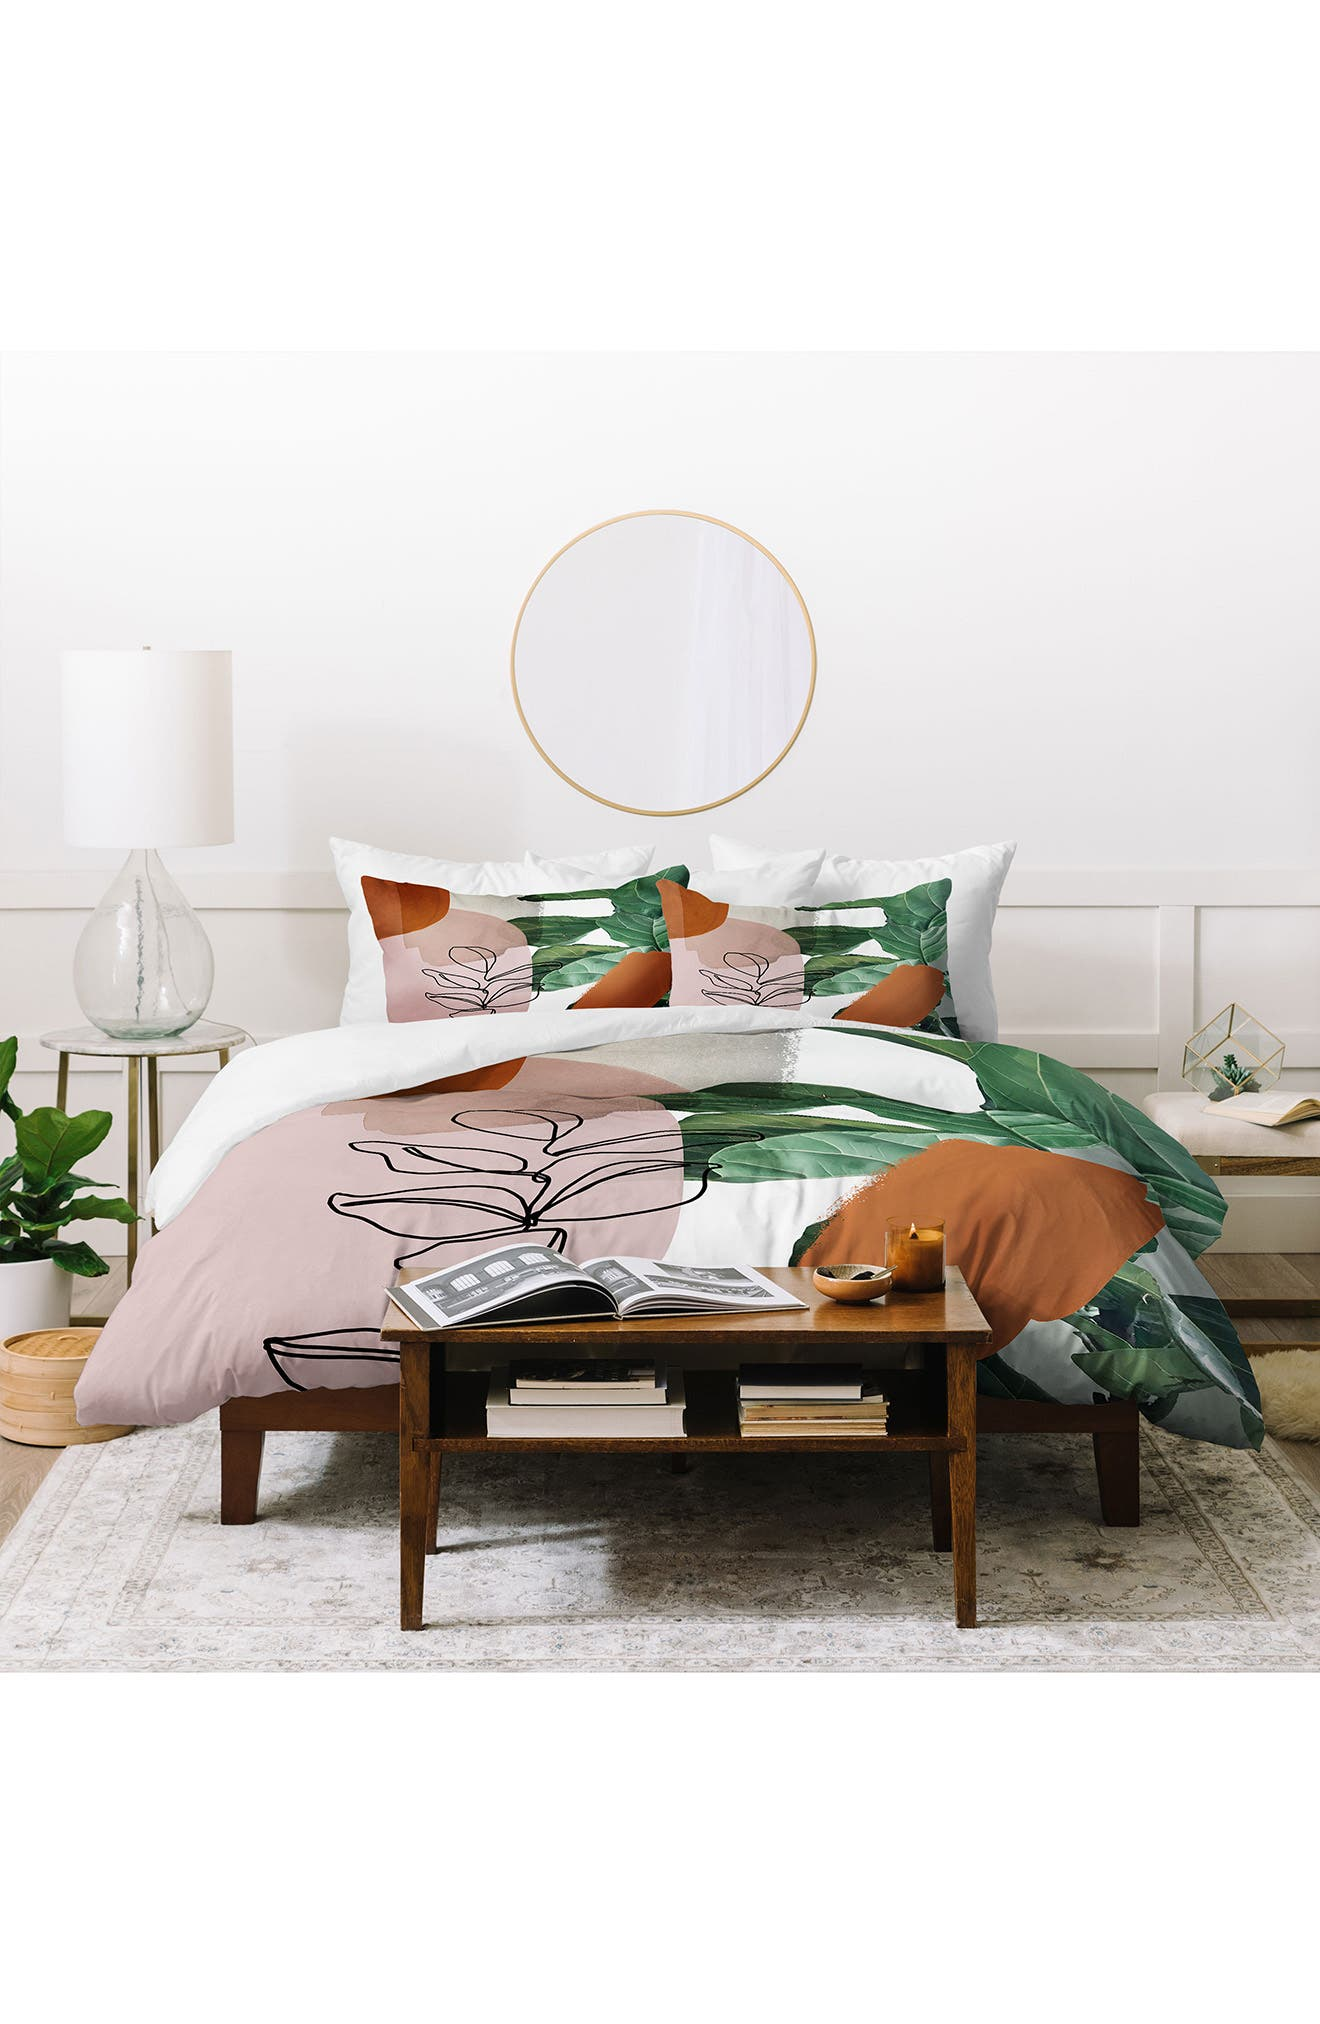 Make your comforter the focal point of the room with this eye-catching and vibrant duvet cover from designer Gale Switzer. A pair of coordinating shams completes the set. Style Name: Deny Designs Gale Switzer Simpatico Duvet Cover & Sham Set. Style Number: 6083332. Available in stores.